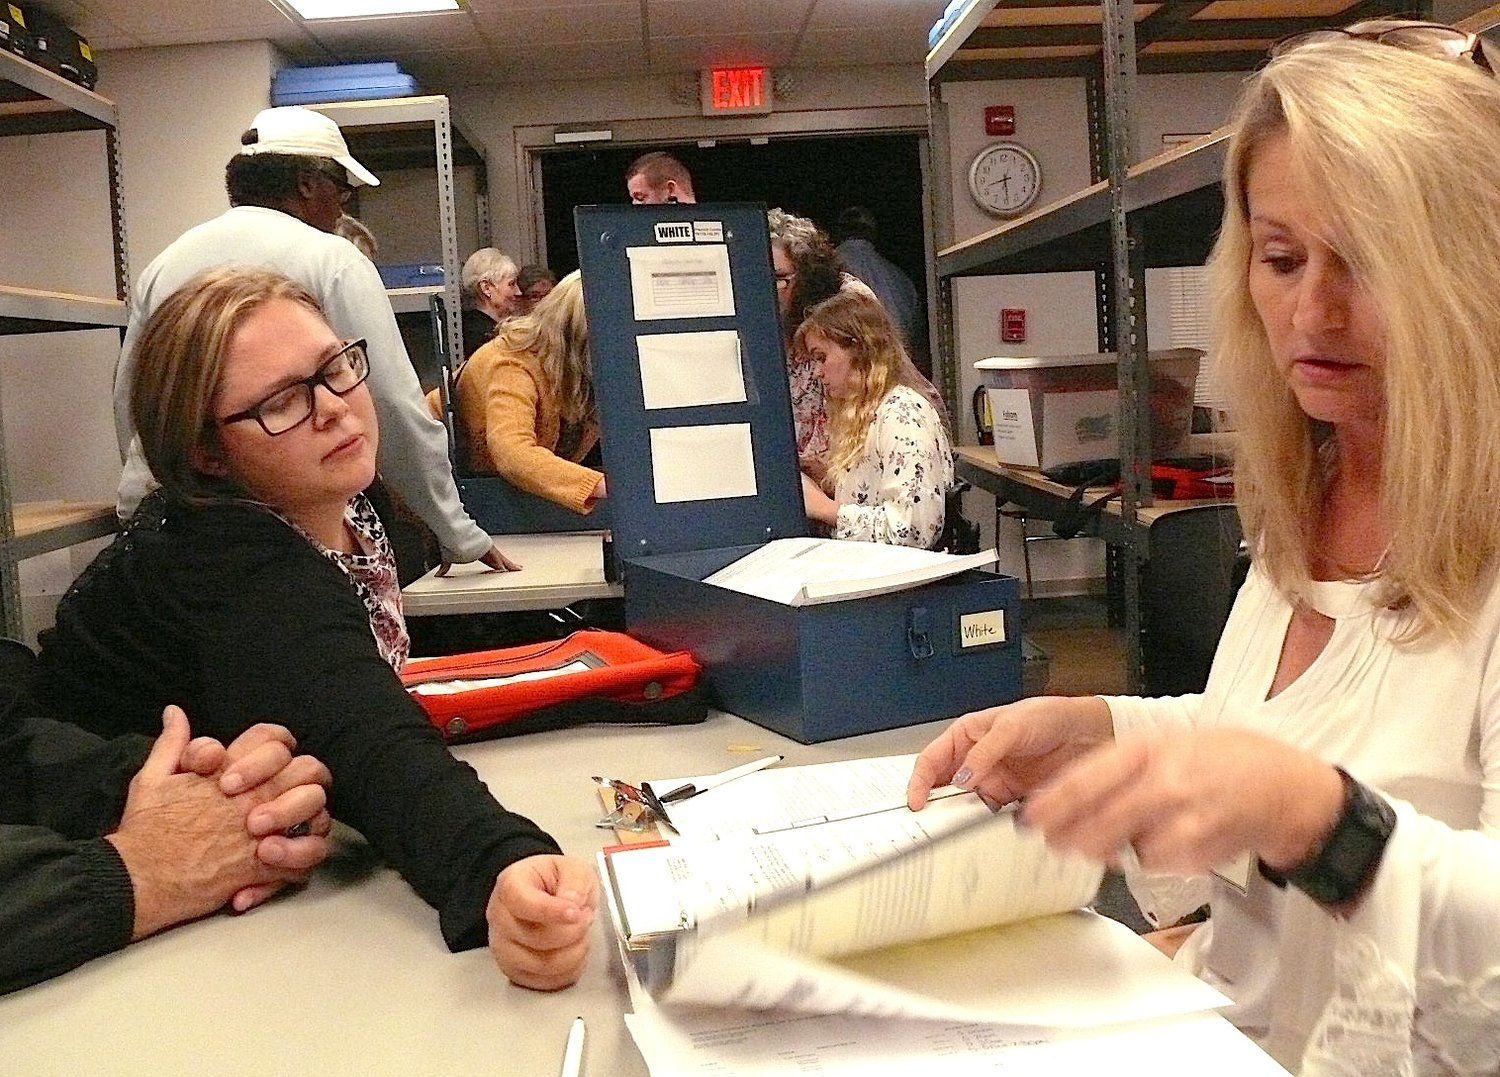 Poll officer Lisa Sanford checks in supplies from the White polling place after Tuesday's mid-term election.